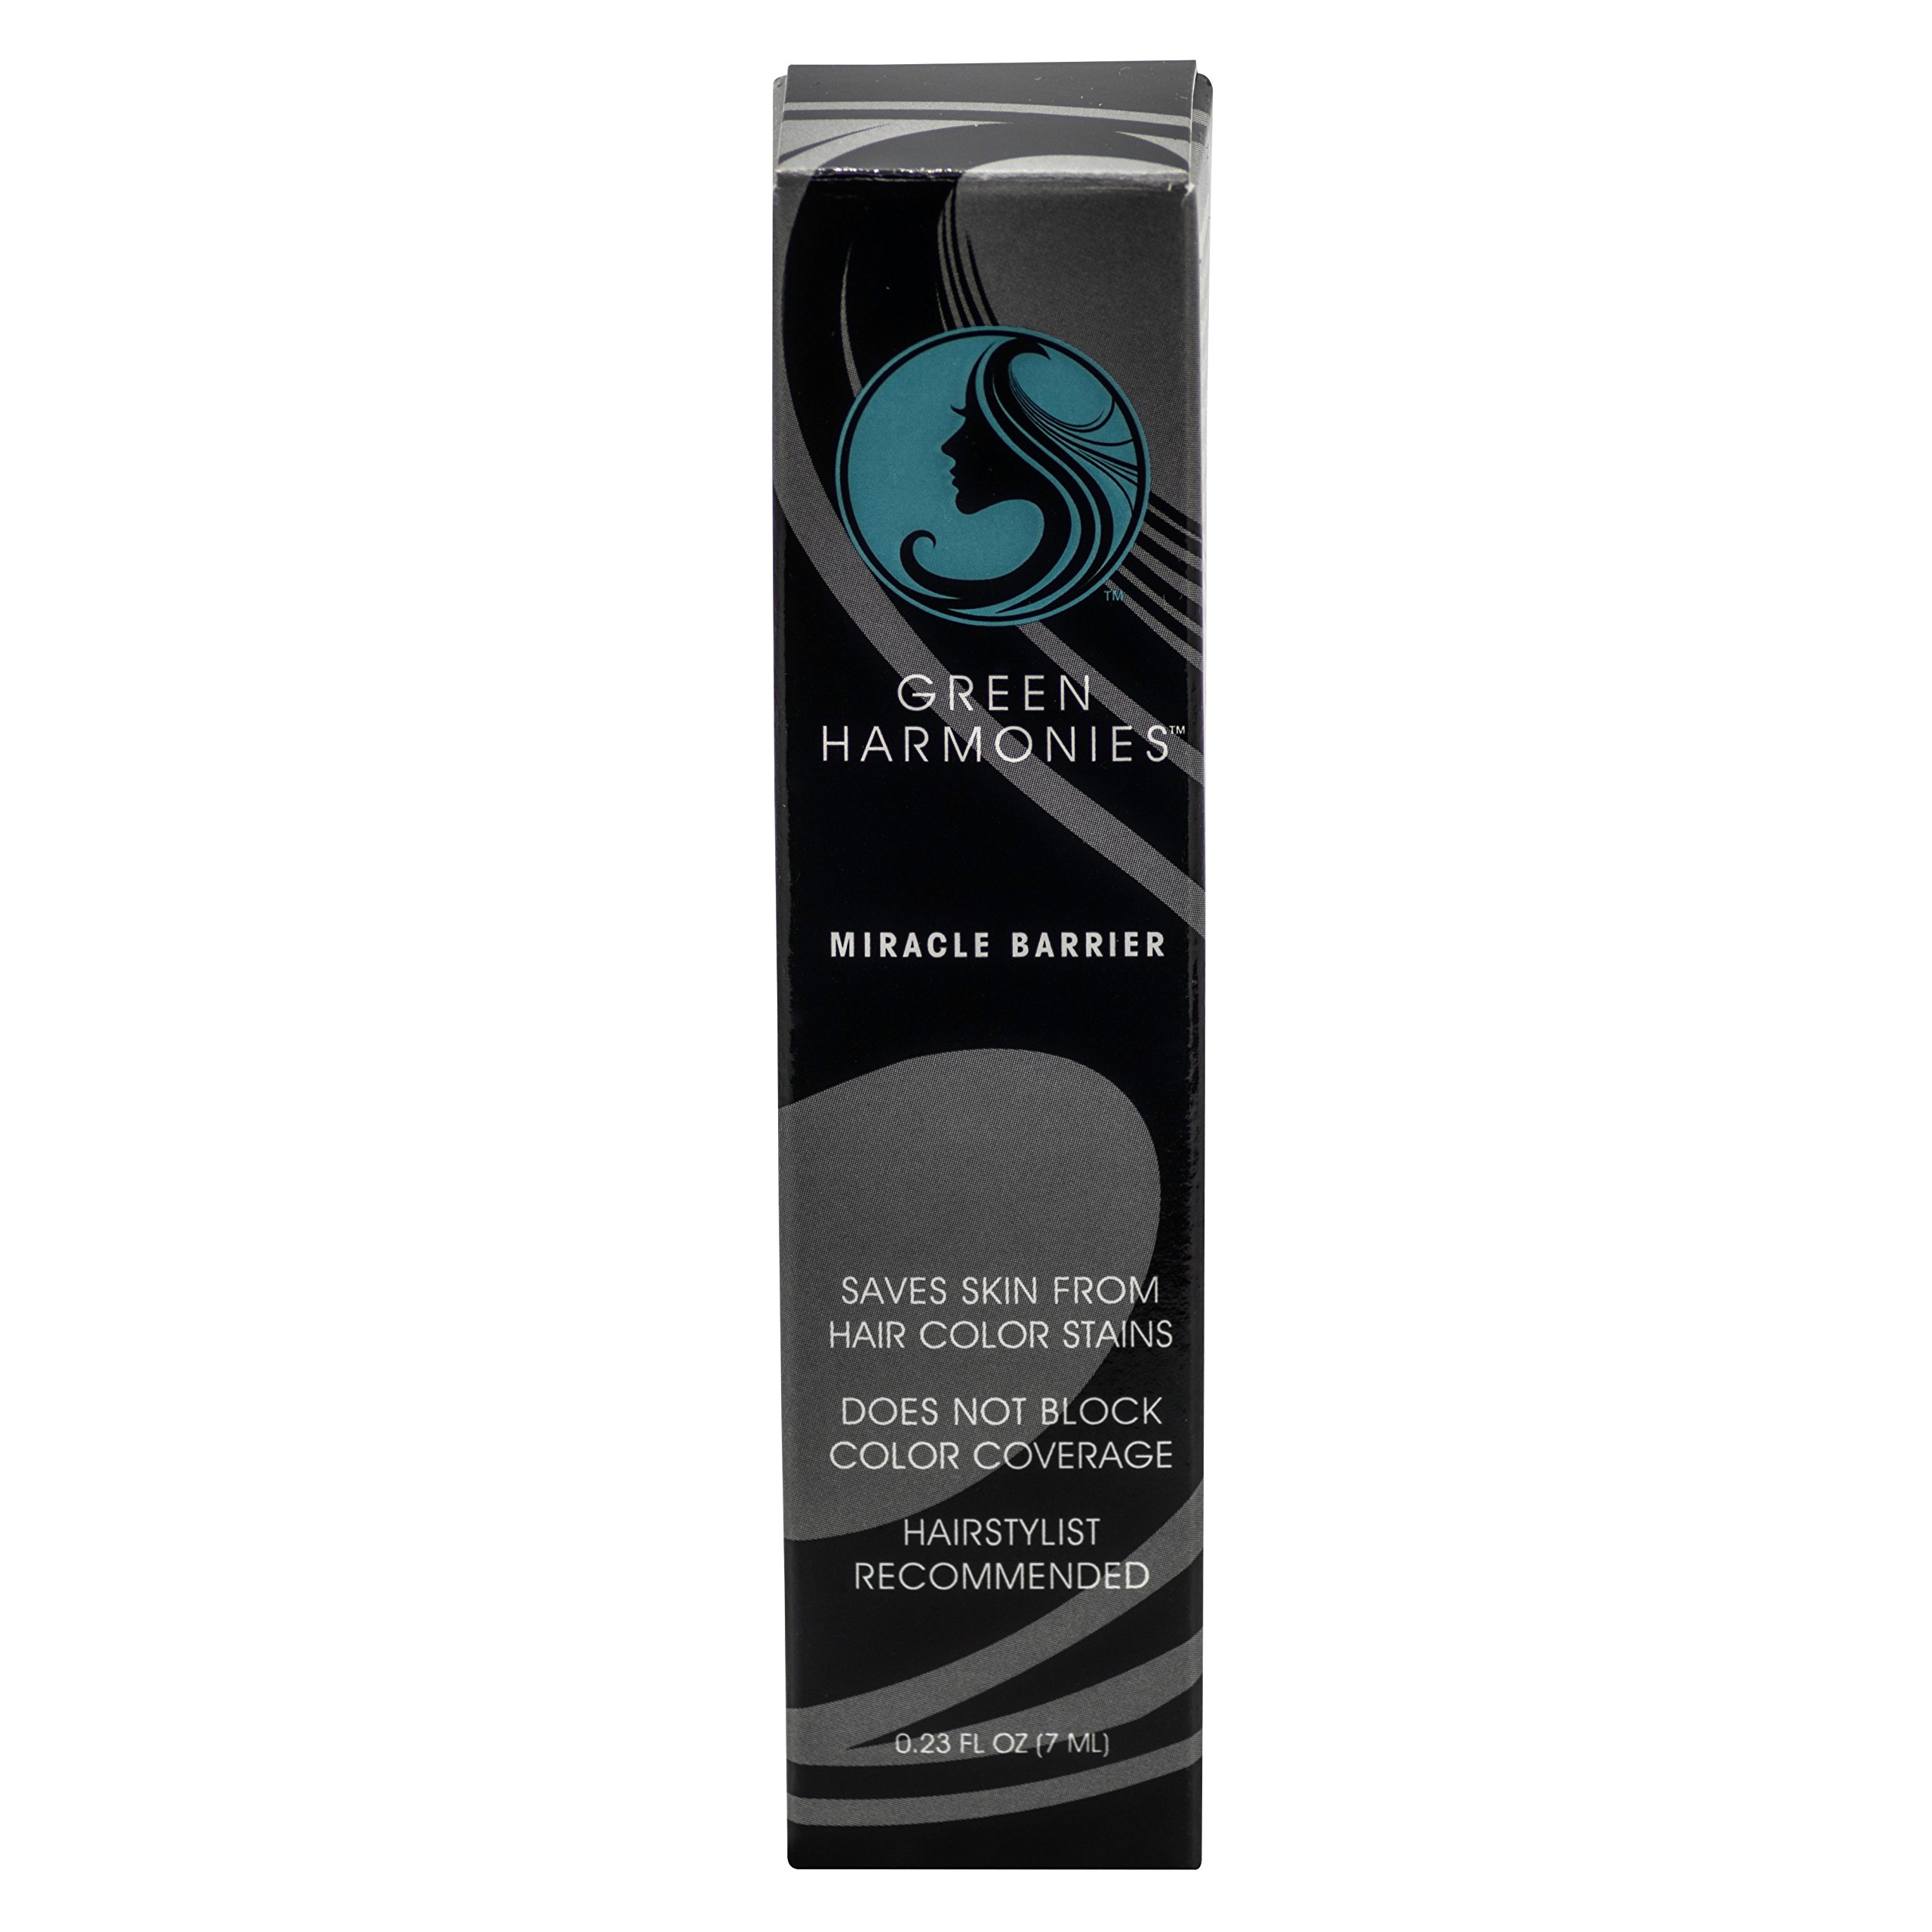 Miracle Barrier travel size .23 oz (7ml) Prevents hair color stains on the face with gentle and kind ingredients. Color your hair not your face!